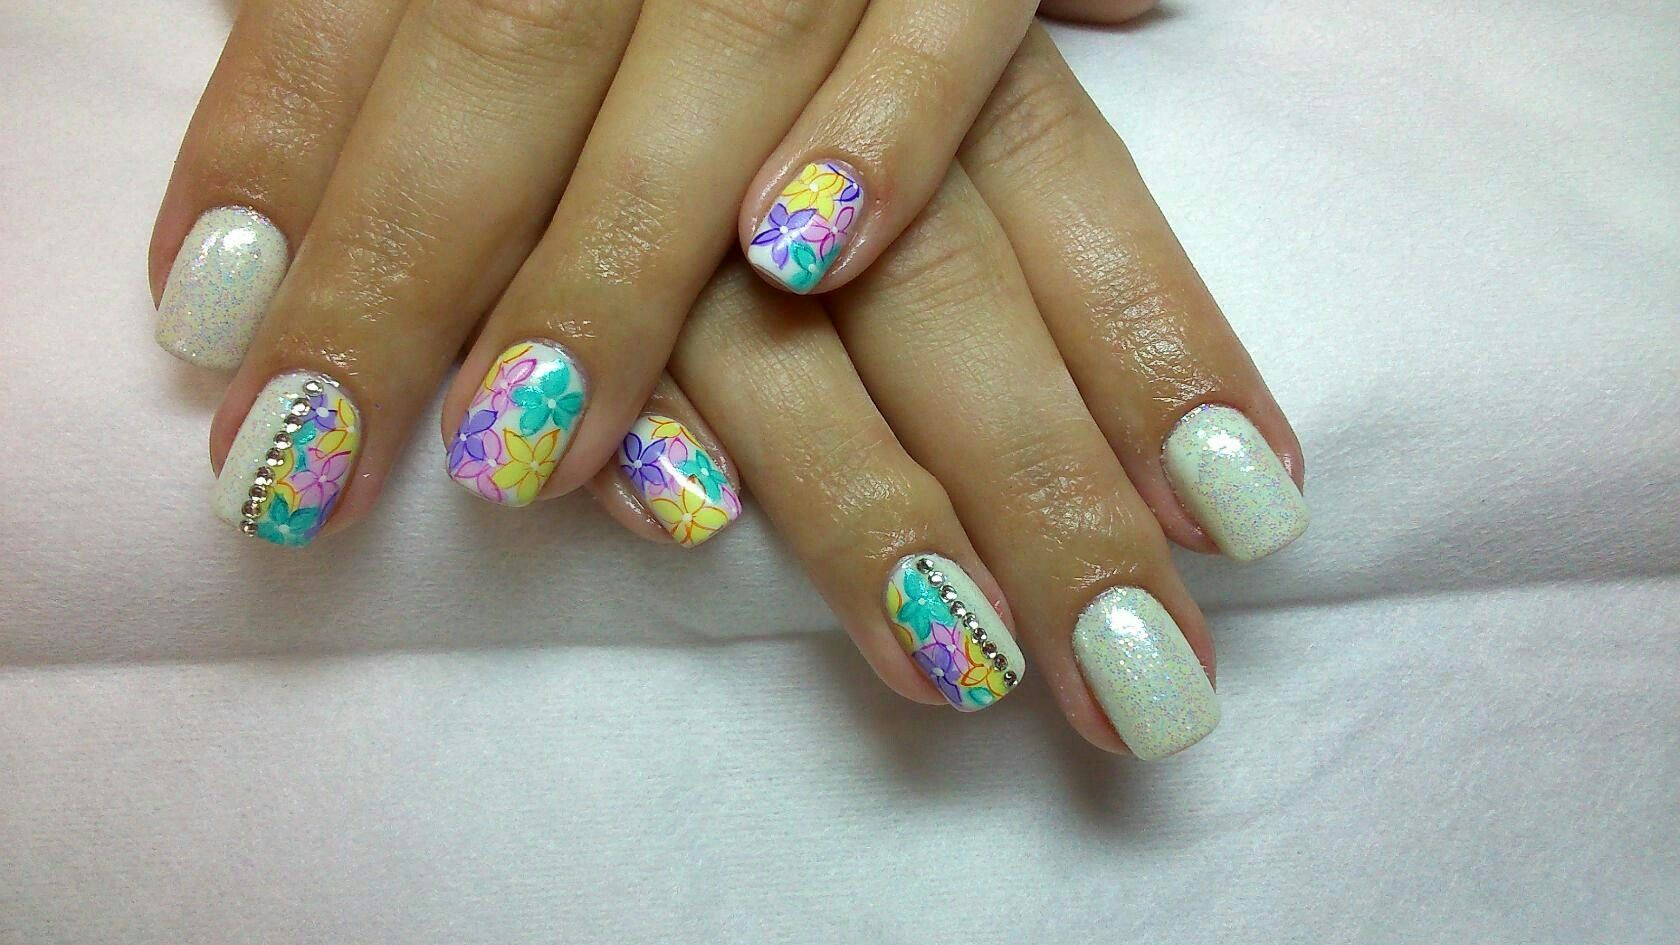 Pin by Heather Hartman on Nails Nails, Beauty, Painting